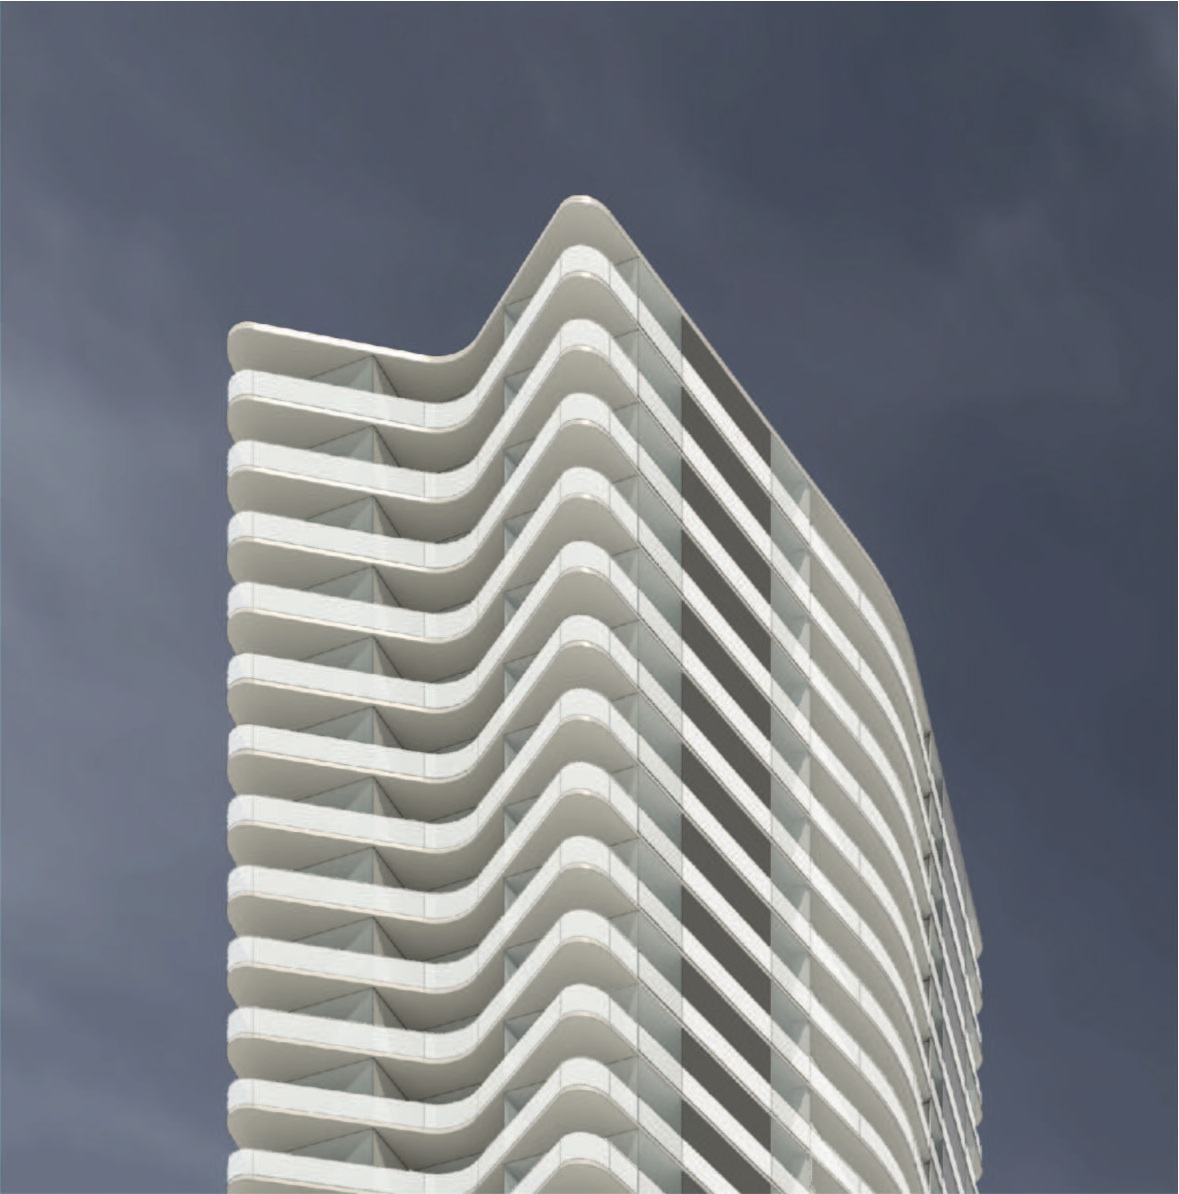 Detail of the residential tower proposed by Reliance Properties for Agnes & Eighth in New West.